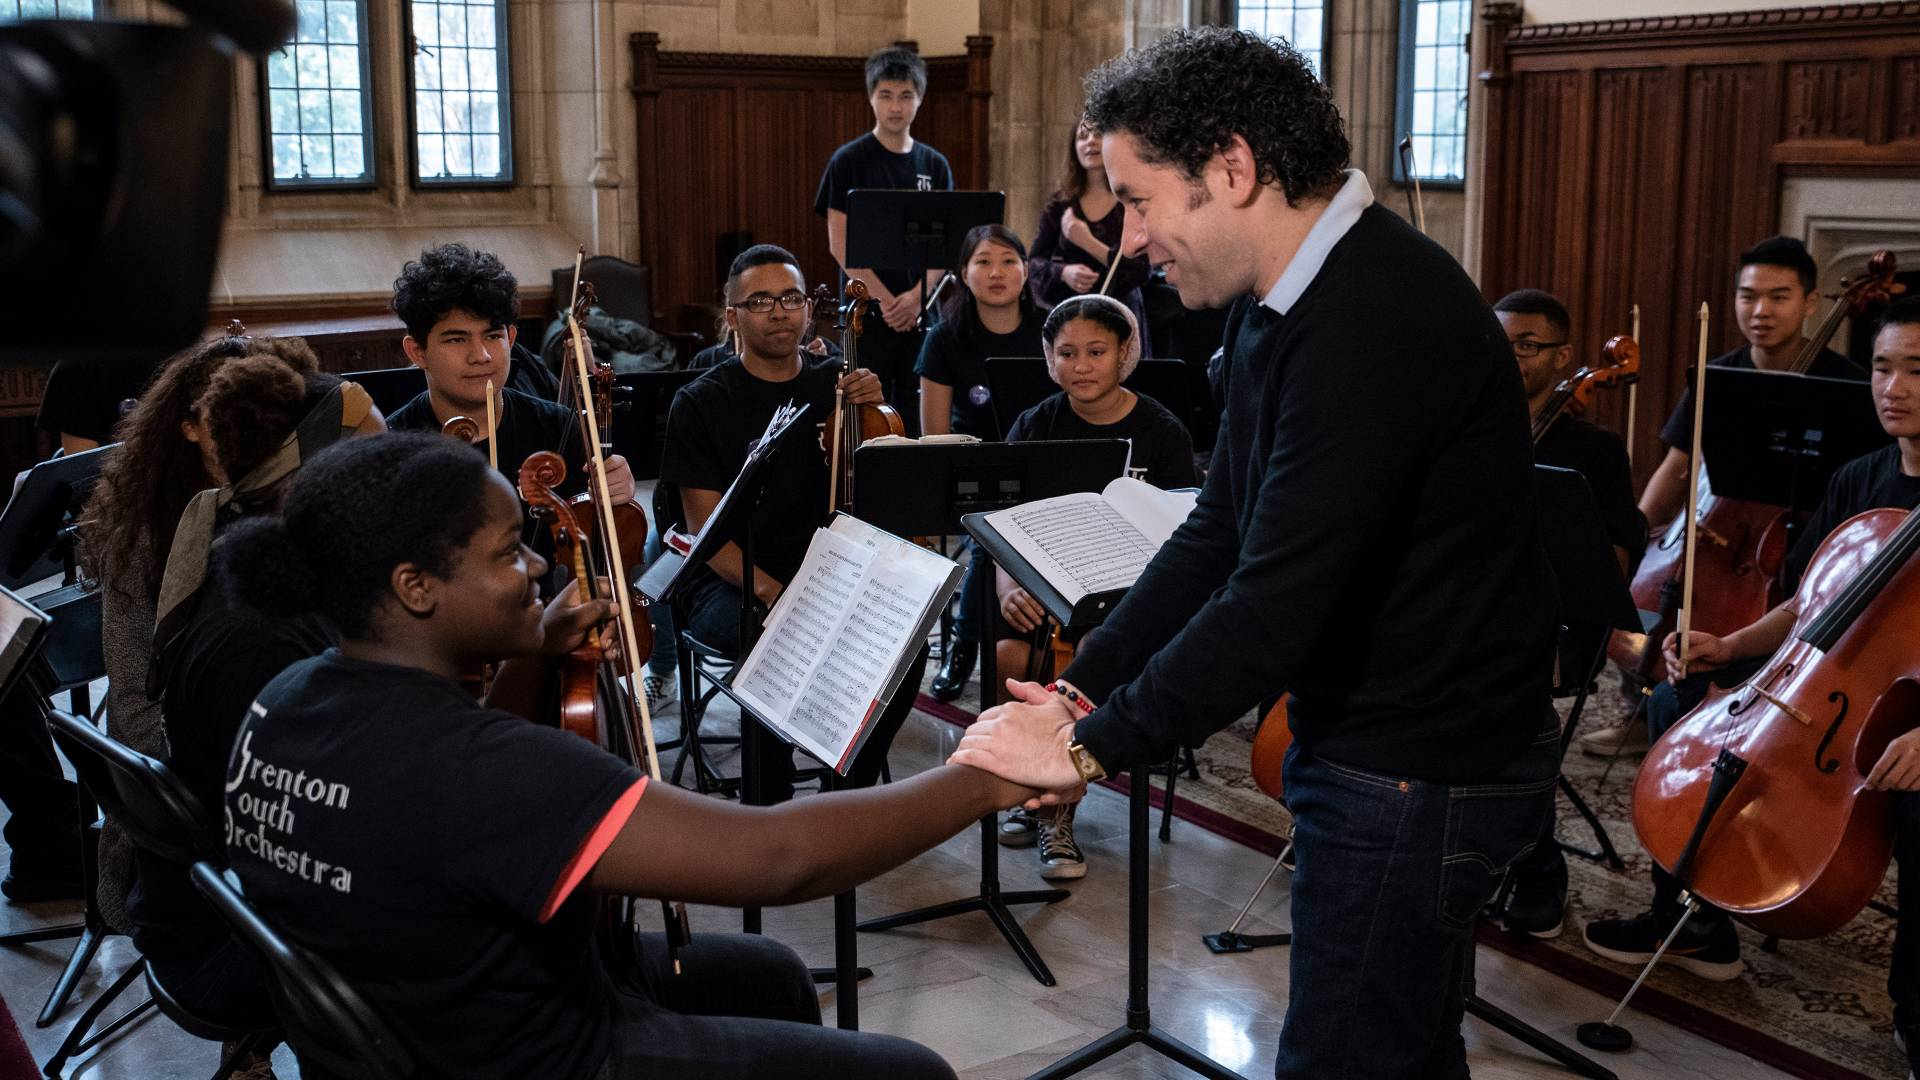 Gustavo Dudamel shaking hands with violinist